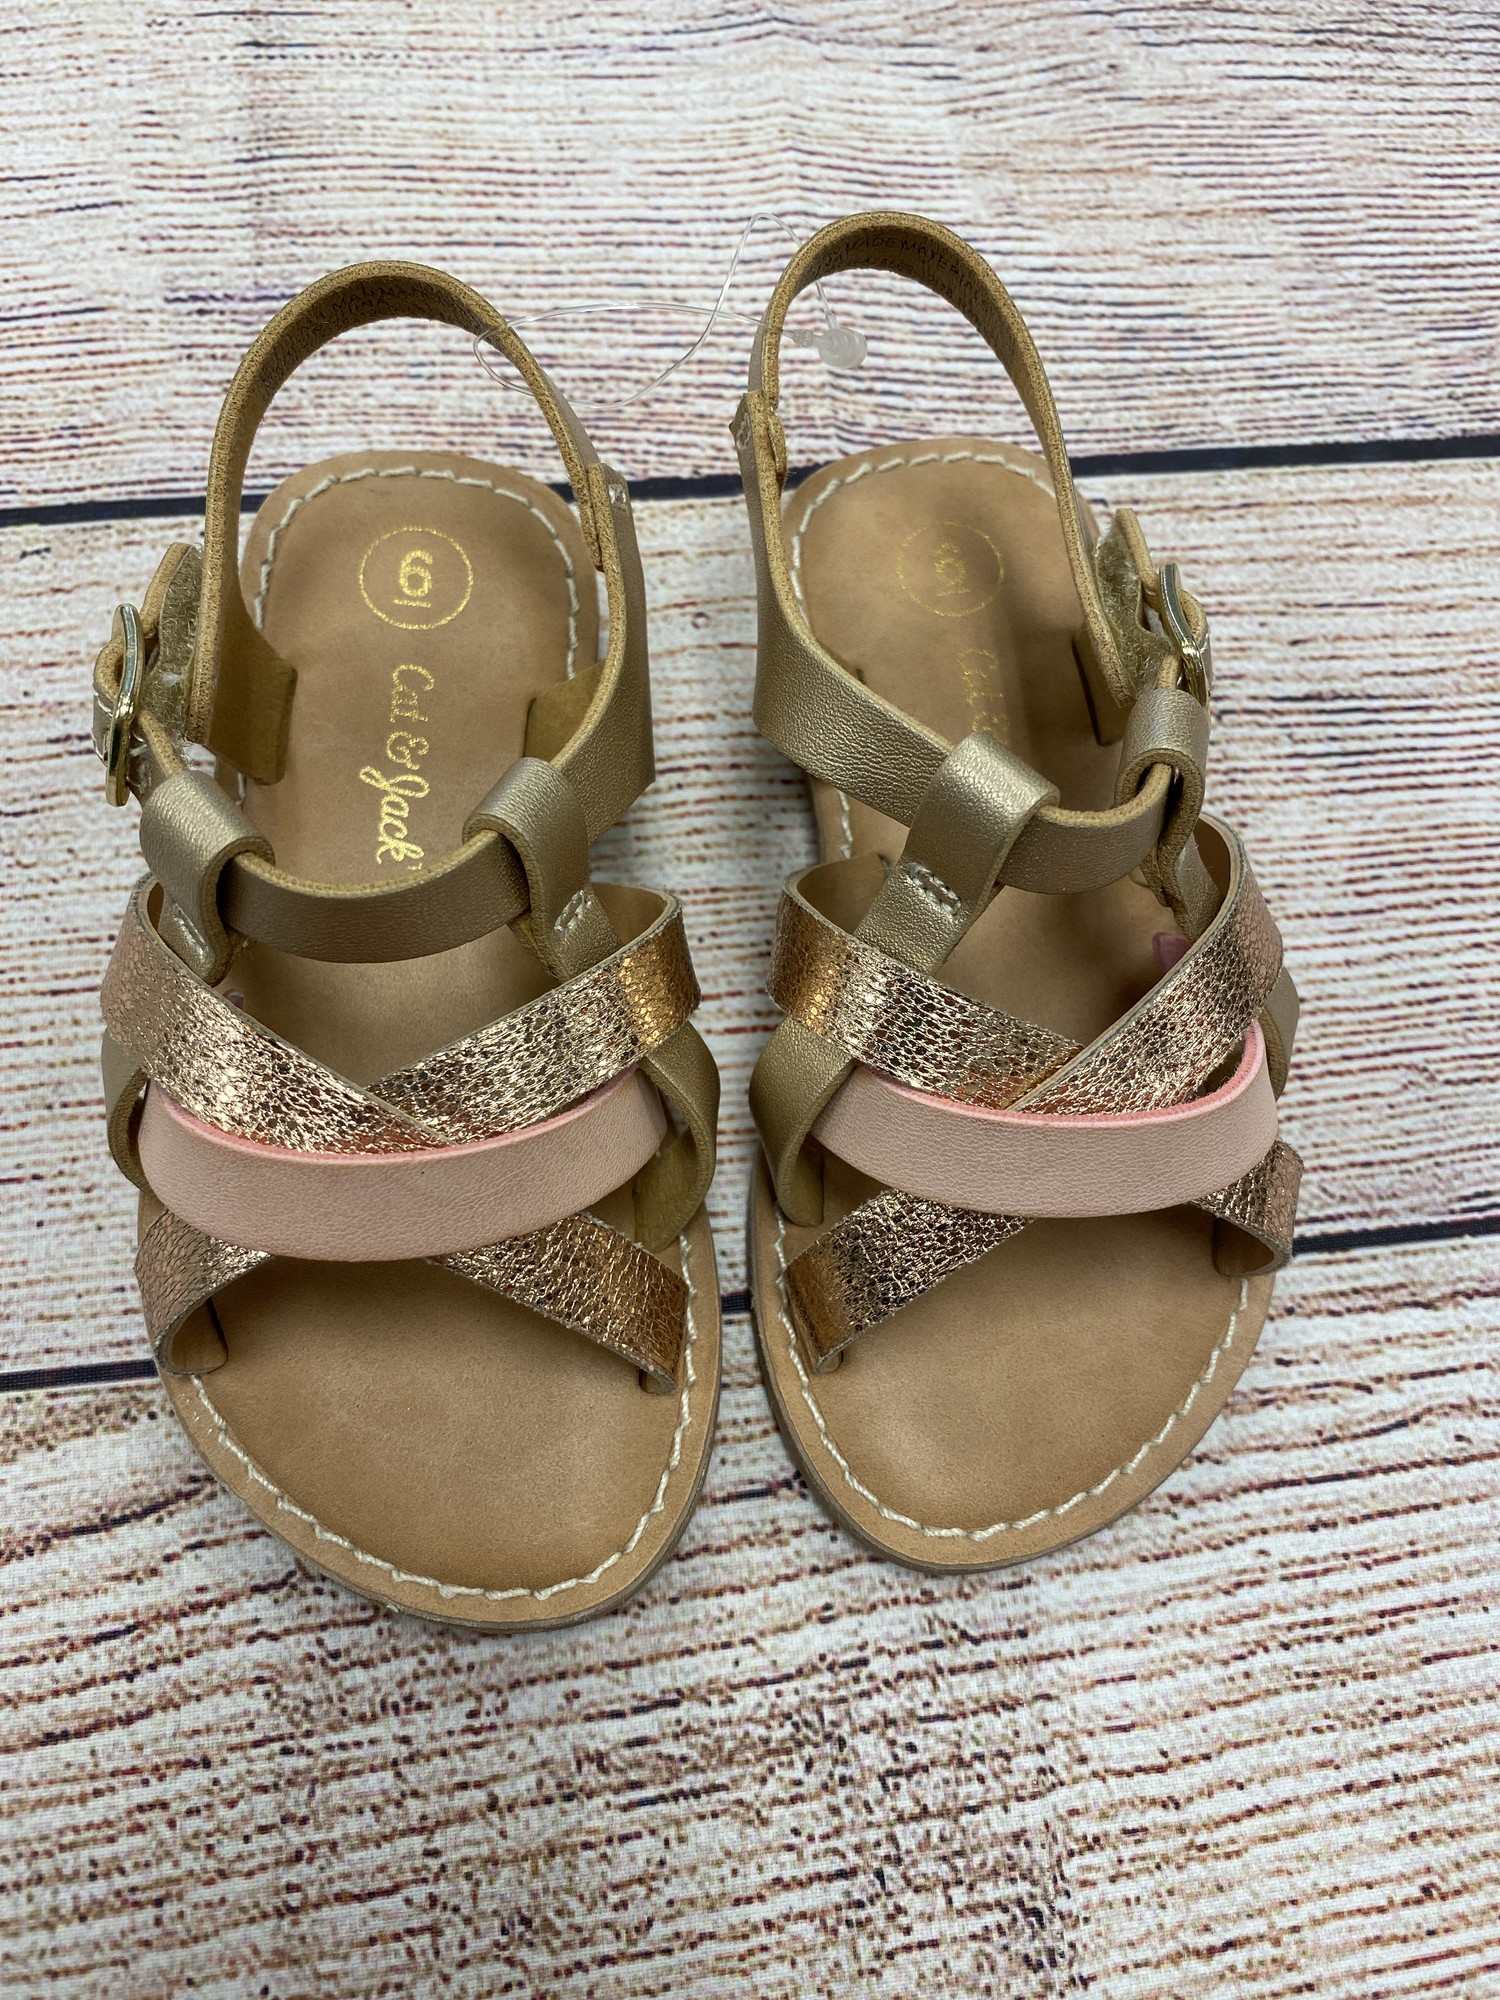 Cat & Jack Sandals, BrnPnk, Size: Shoe 6